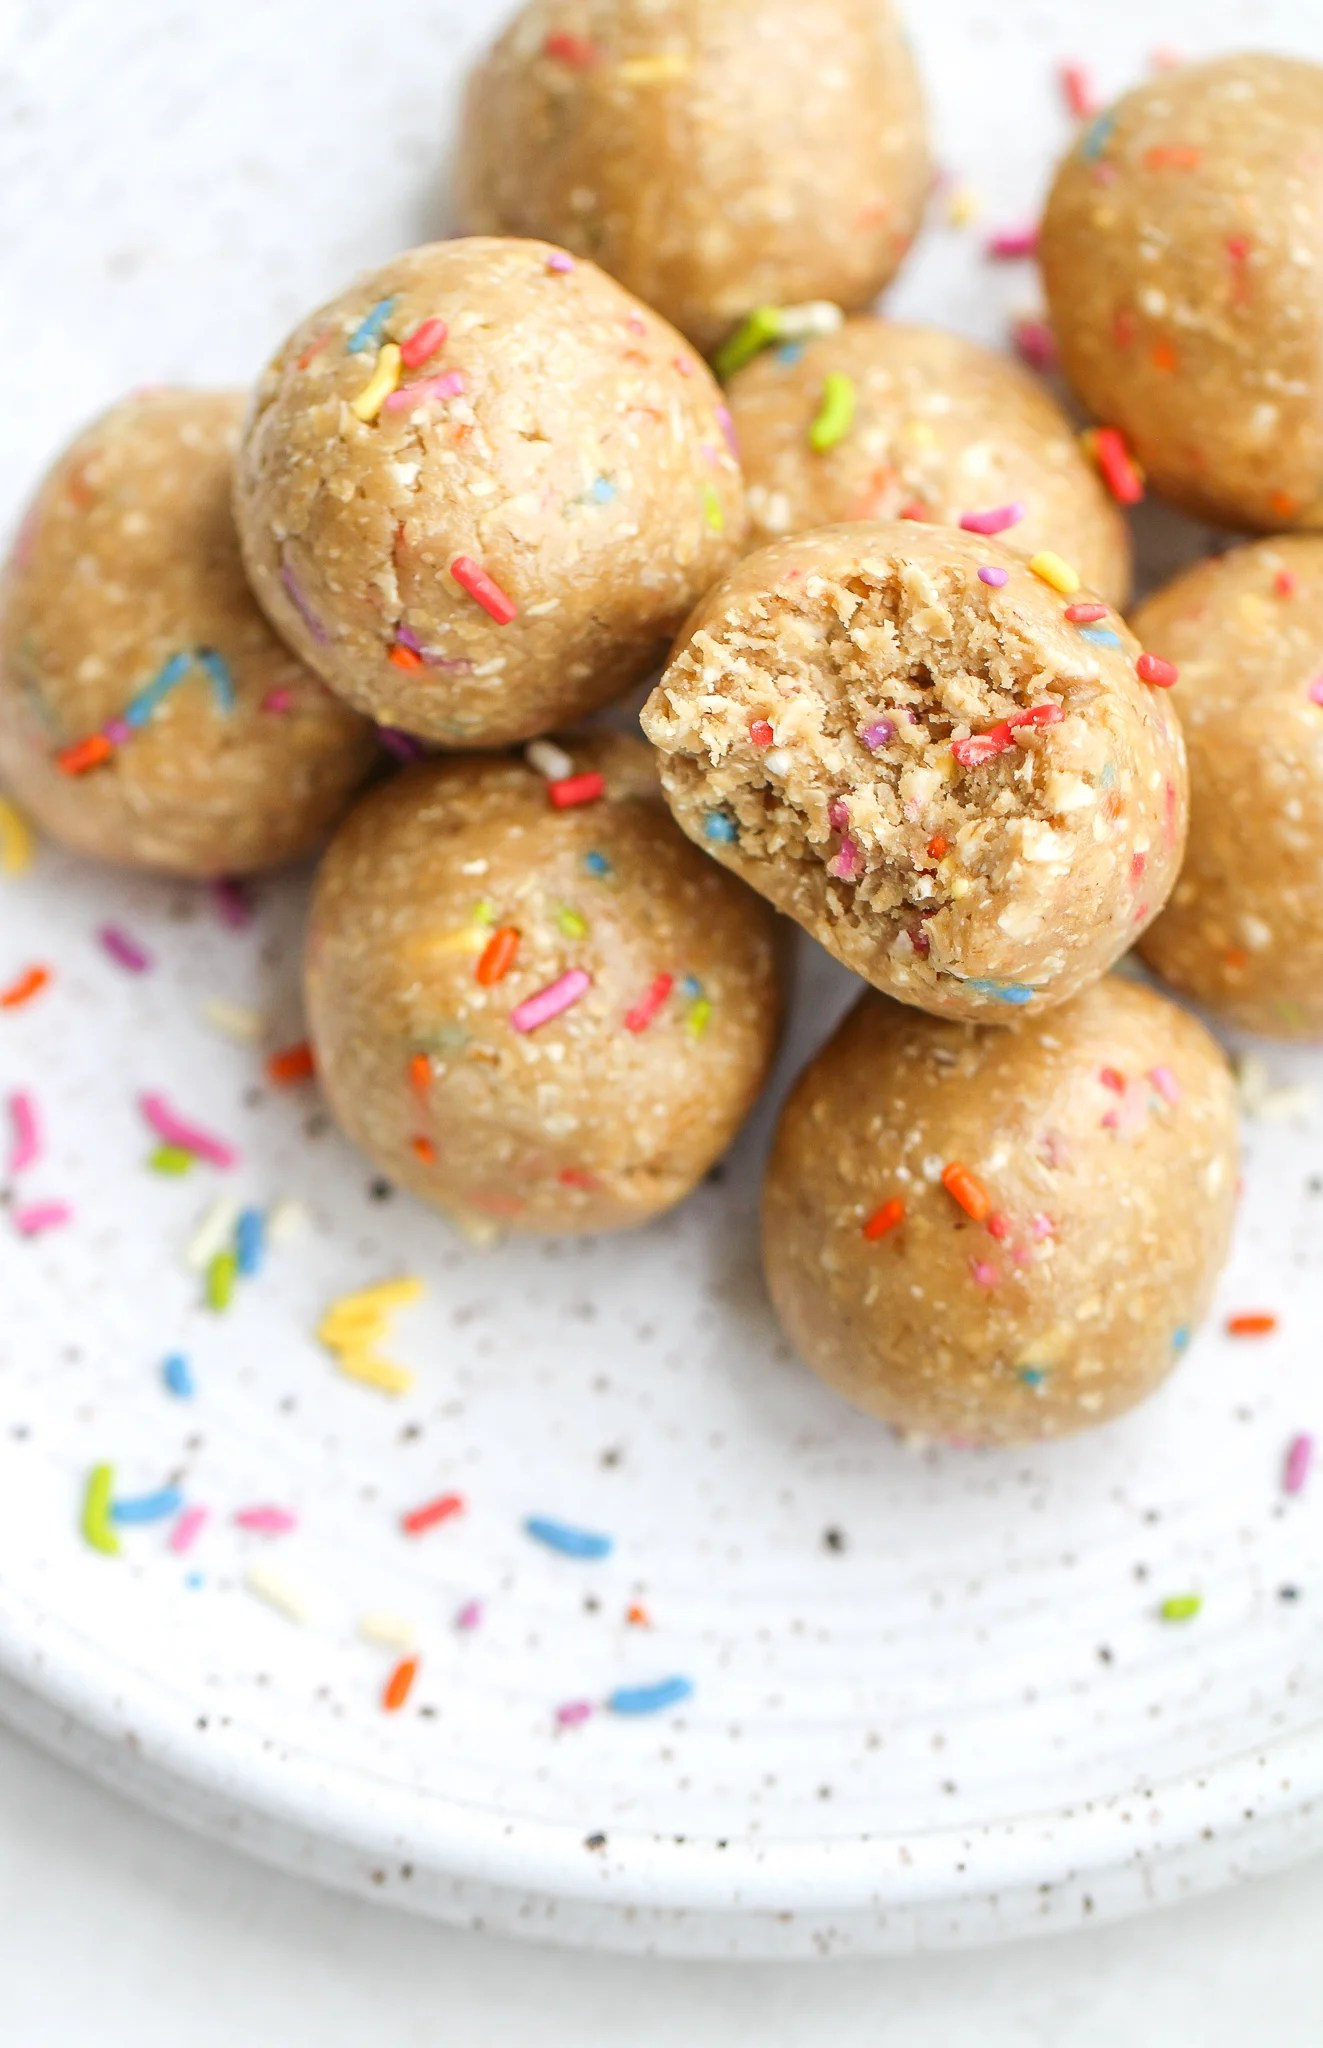 cake batter protein bites stacked on a speckled ceramic plate. One has a bite taken out of it and there are sprinkles scattered on the plate